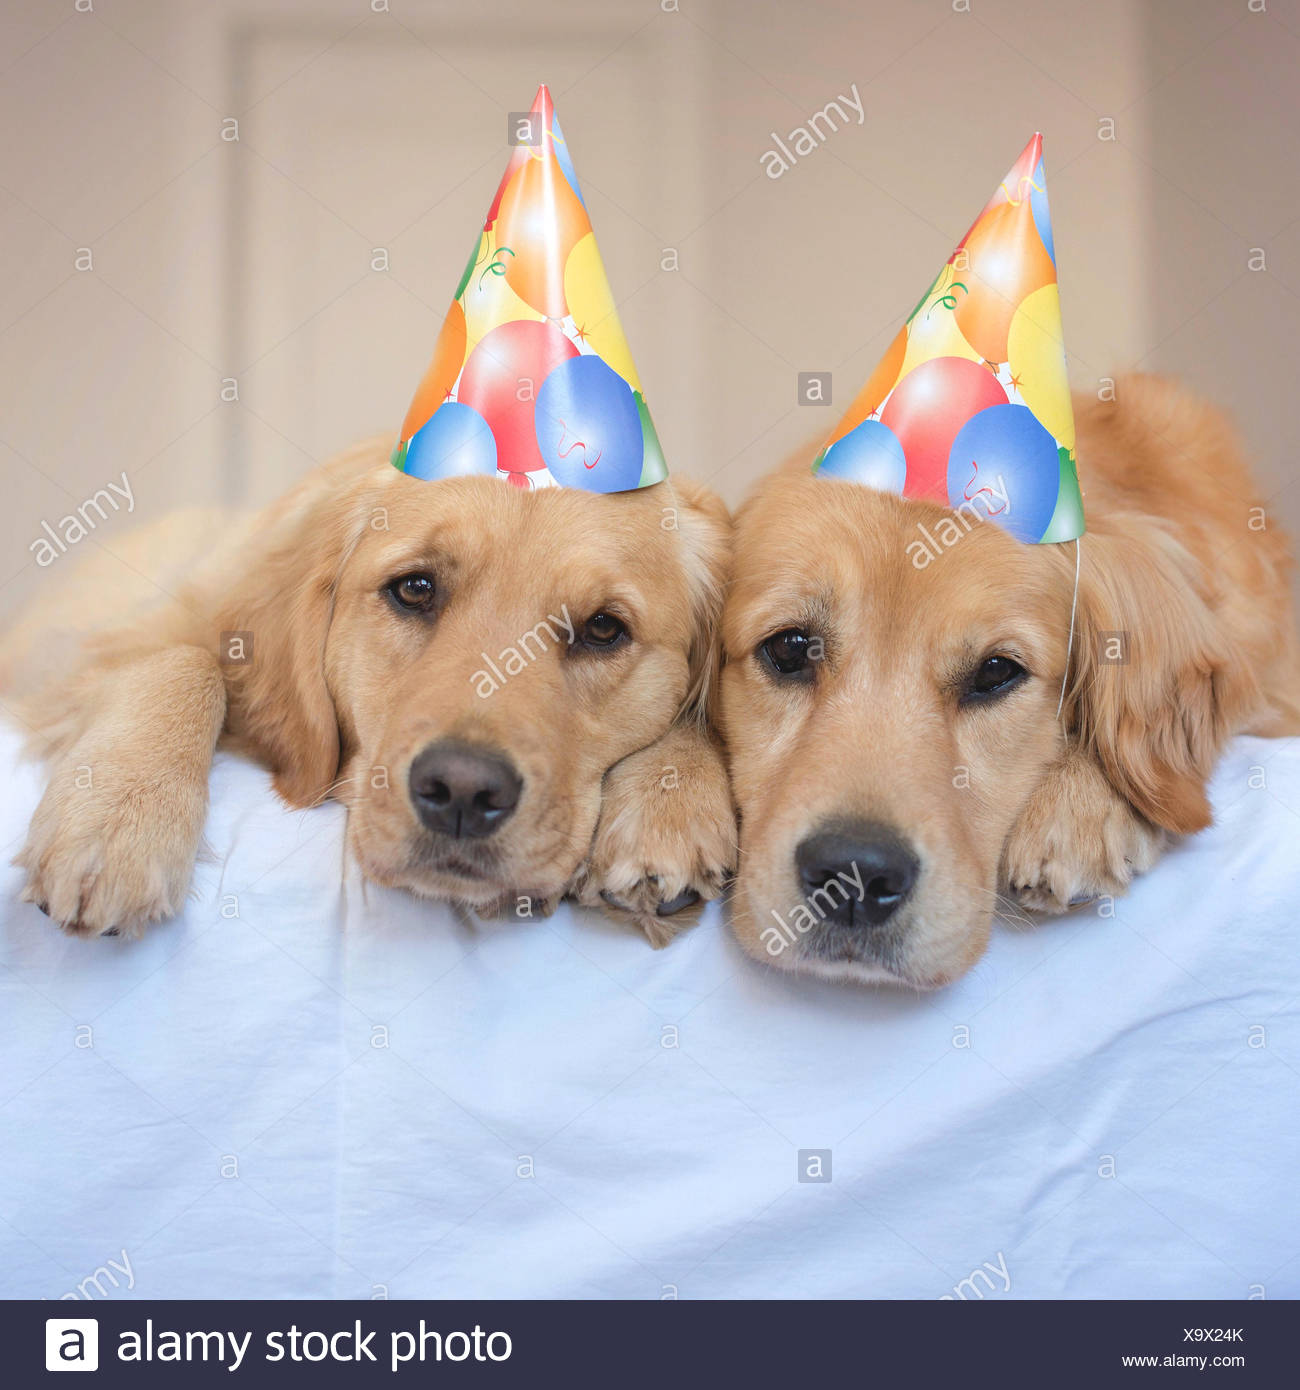 Two Golden Retriever Dogs Wearing Party Hats Stock Photo 281470243